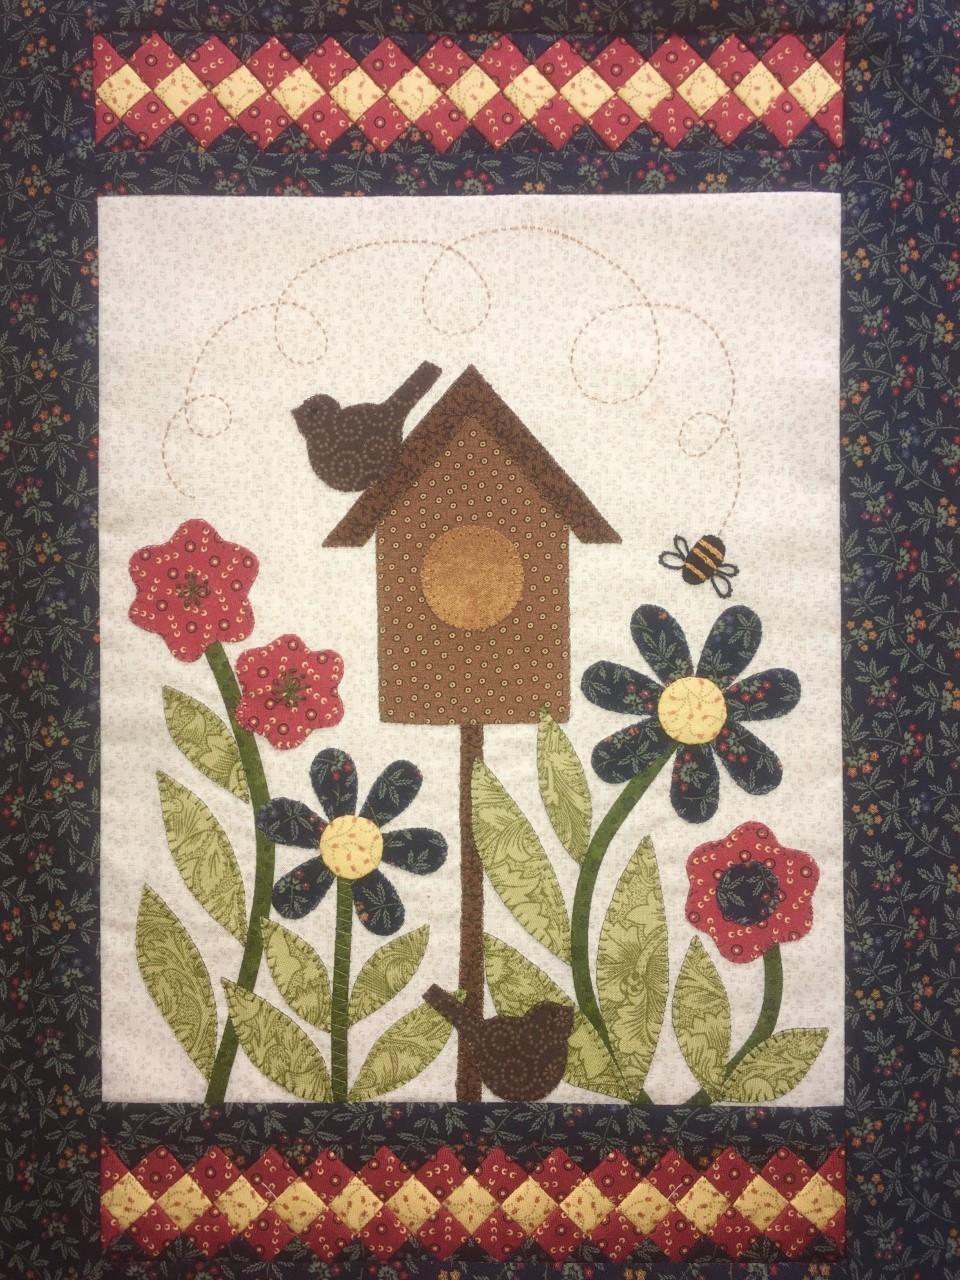 Bird House Wall Hanging Kit